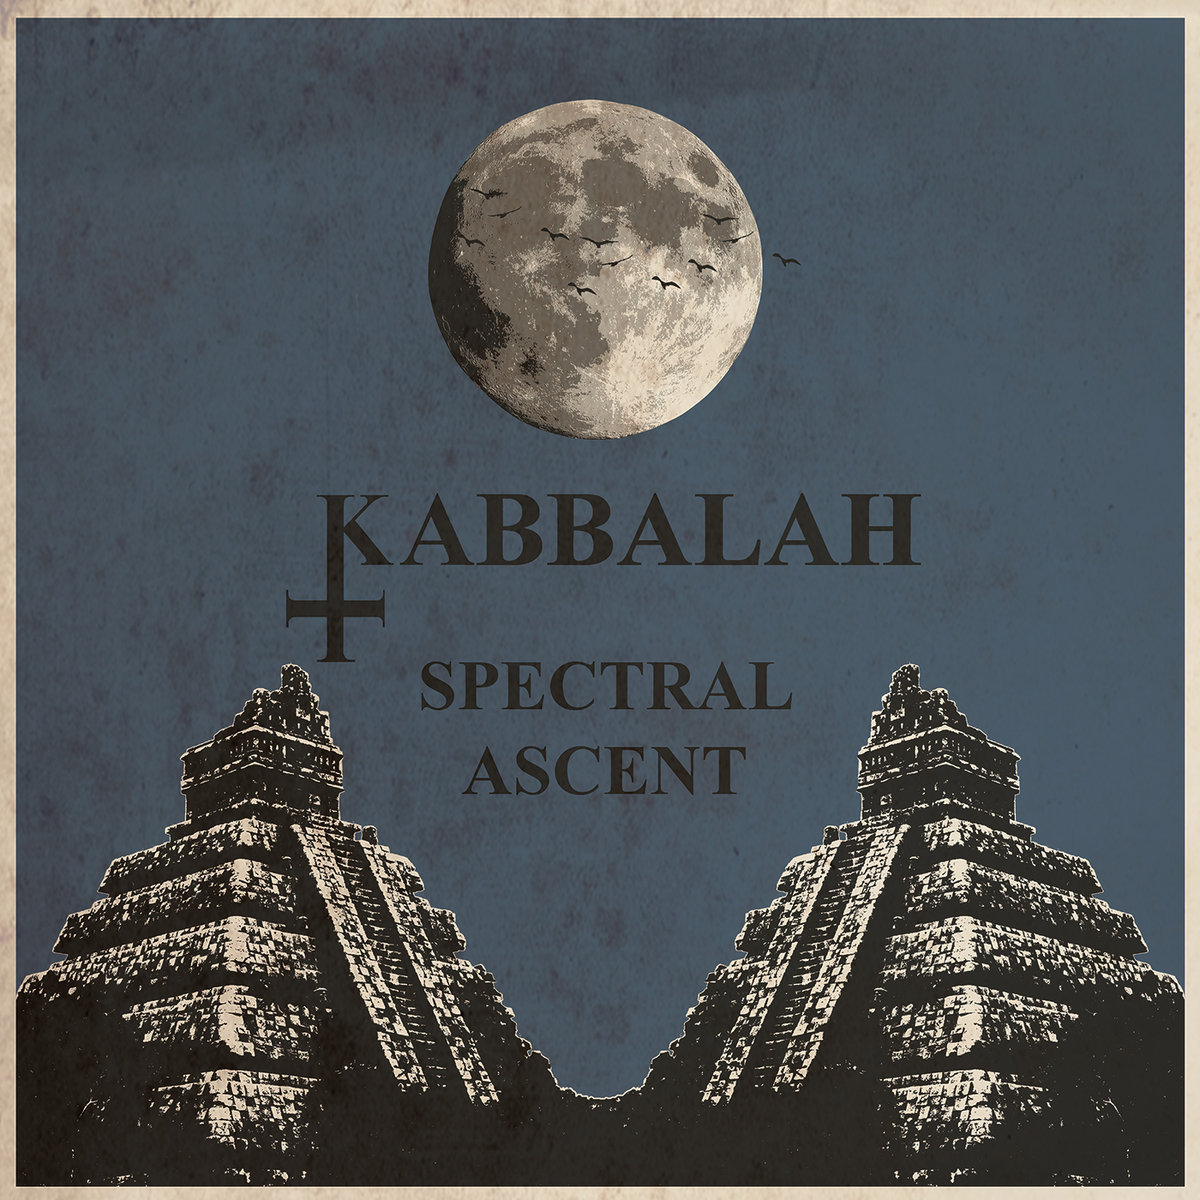 Spectral Ascent Kabbalah 2 Way Switch Twin And Earth By